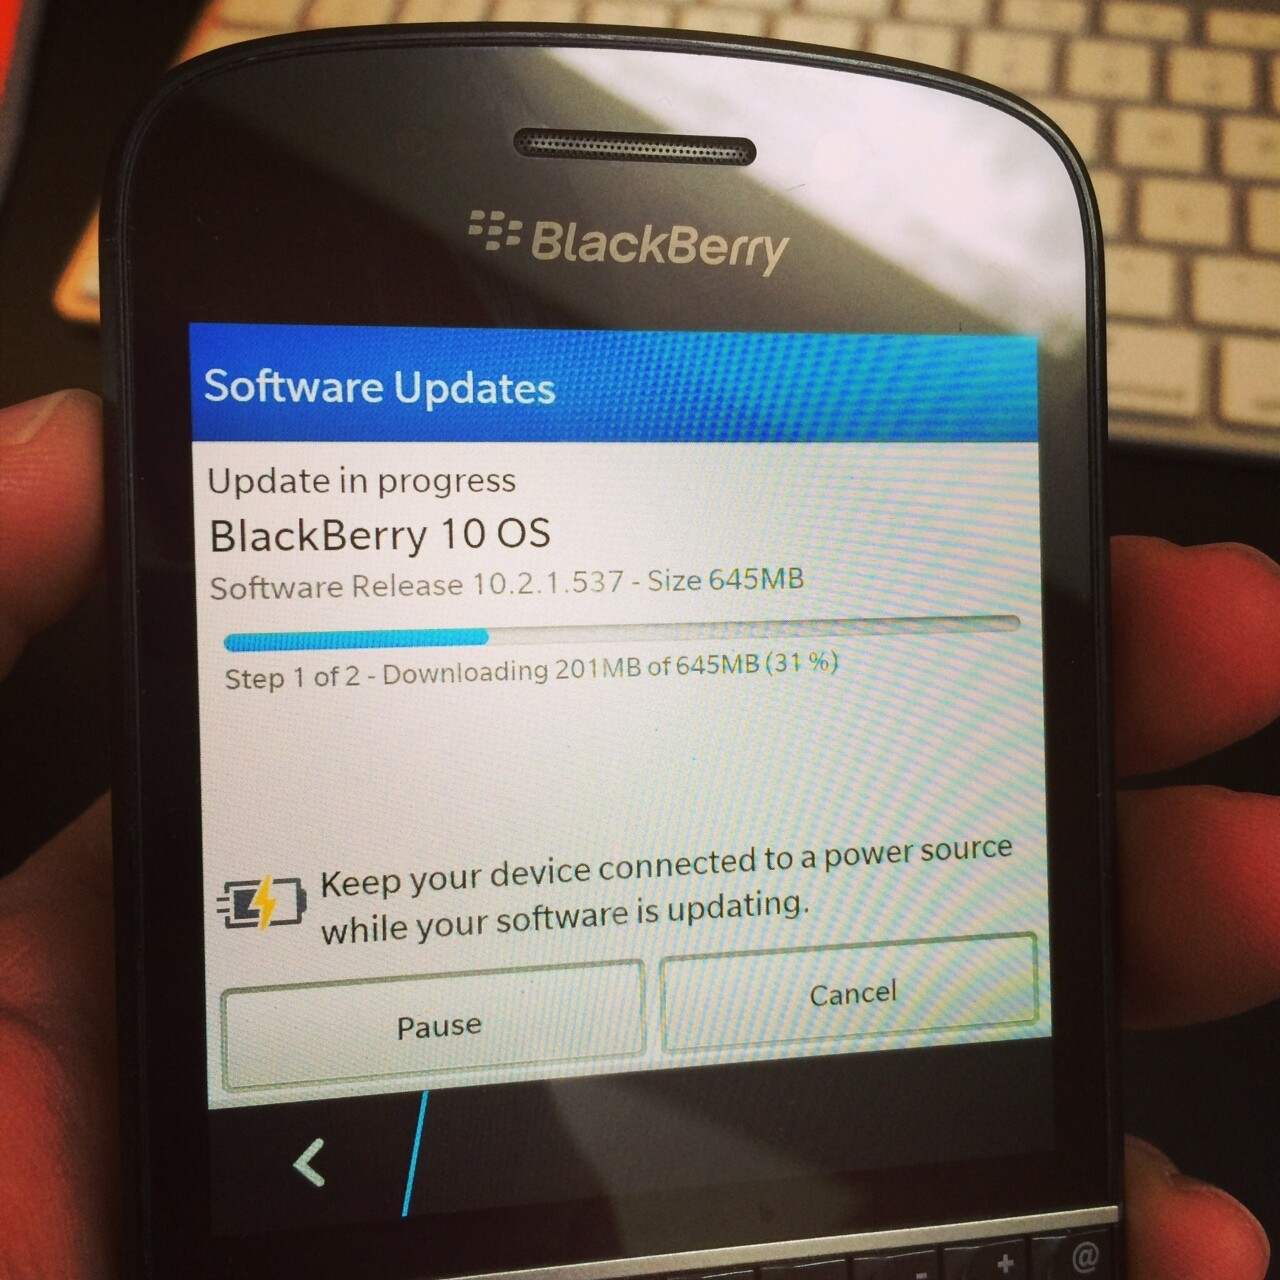 Blackberry software updates new update software for blackberry.